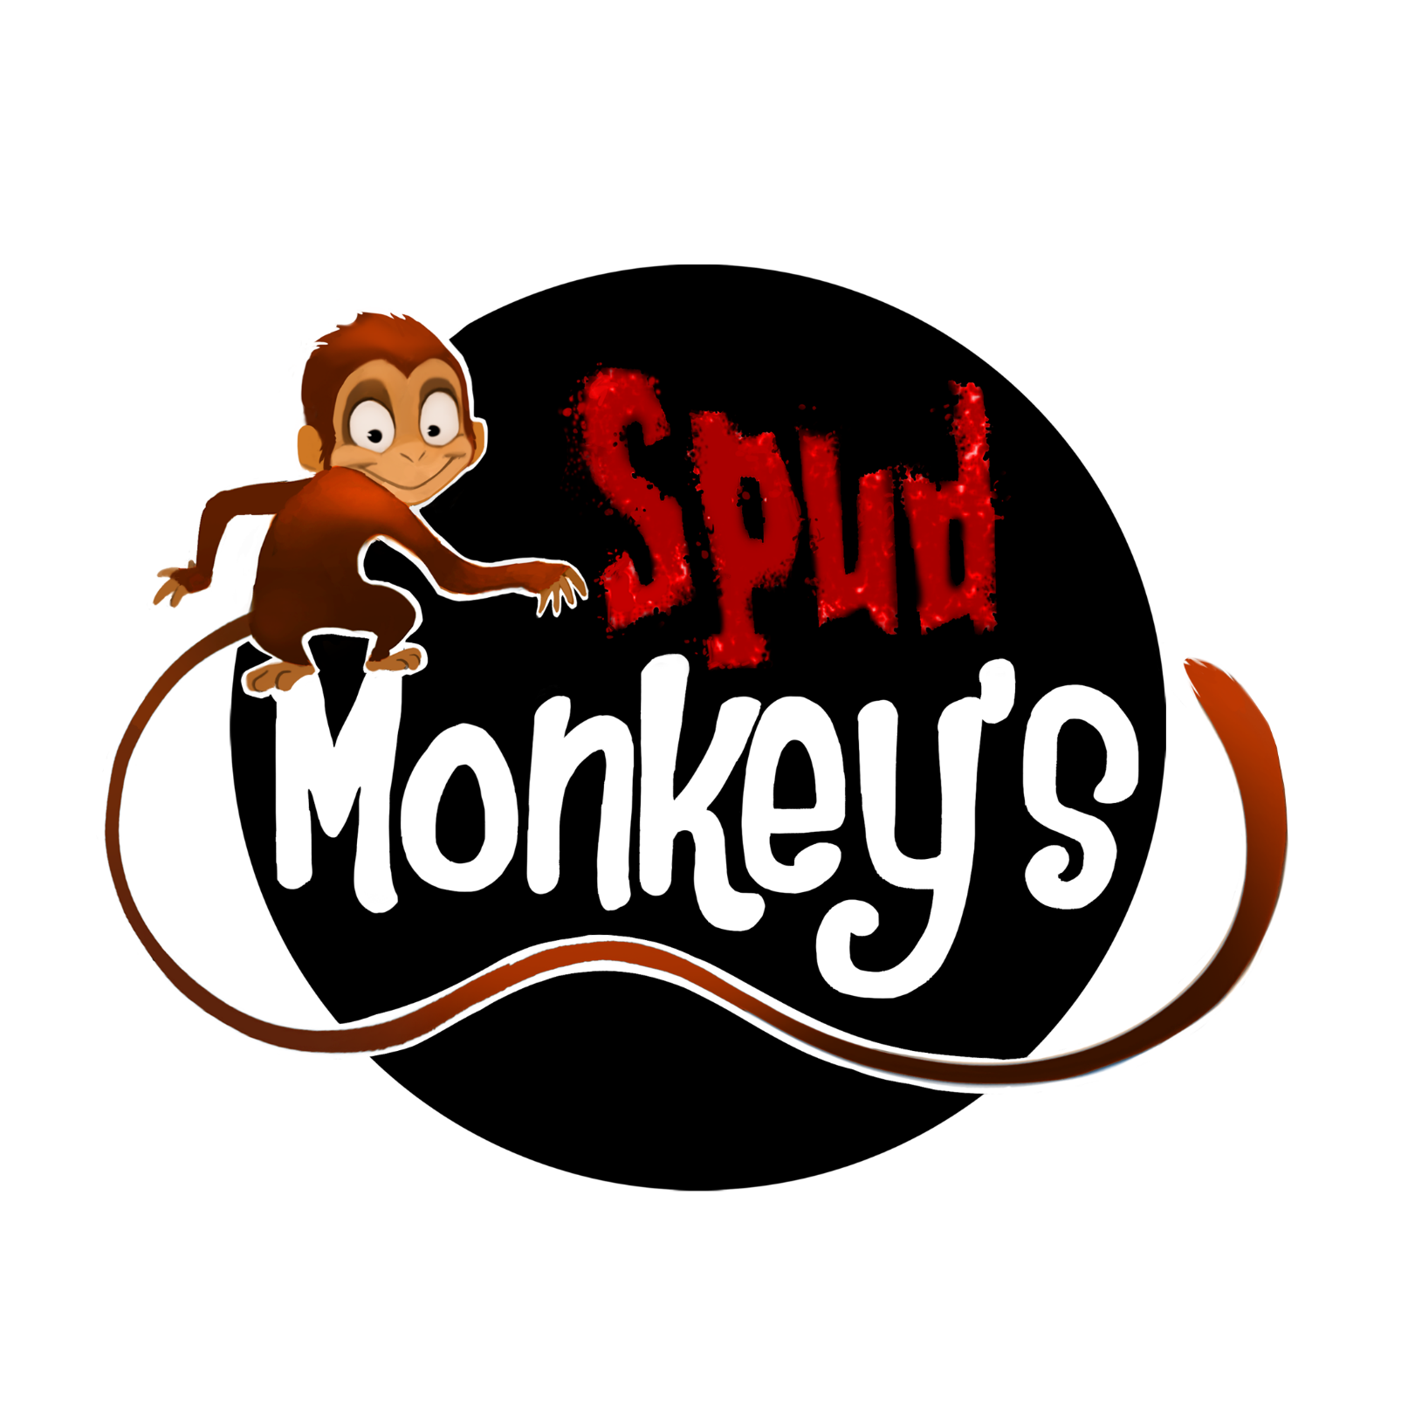 Spud Monkey's Bar and Grill